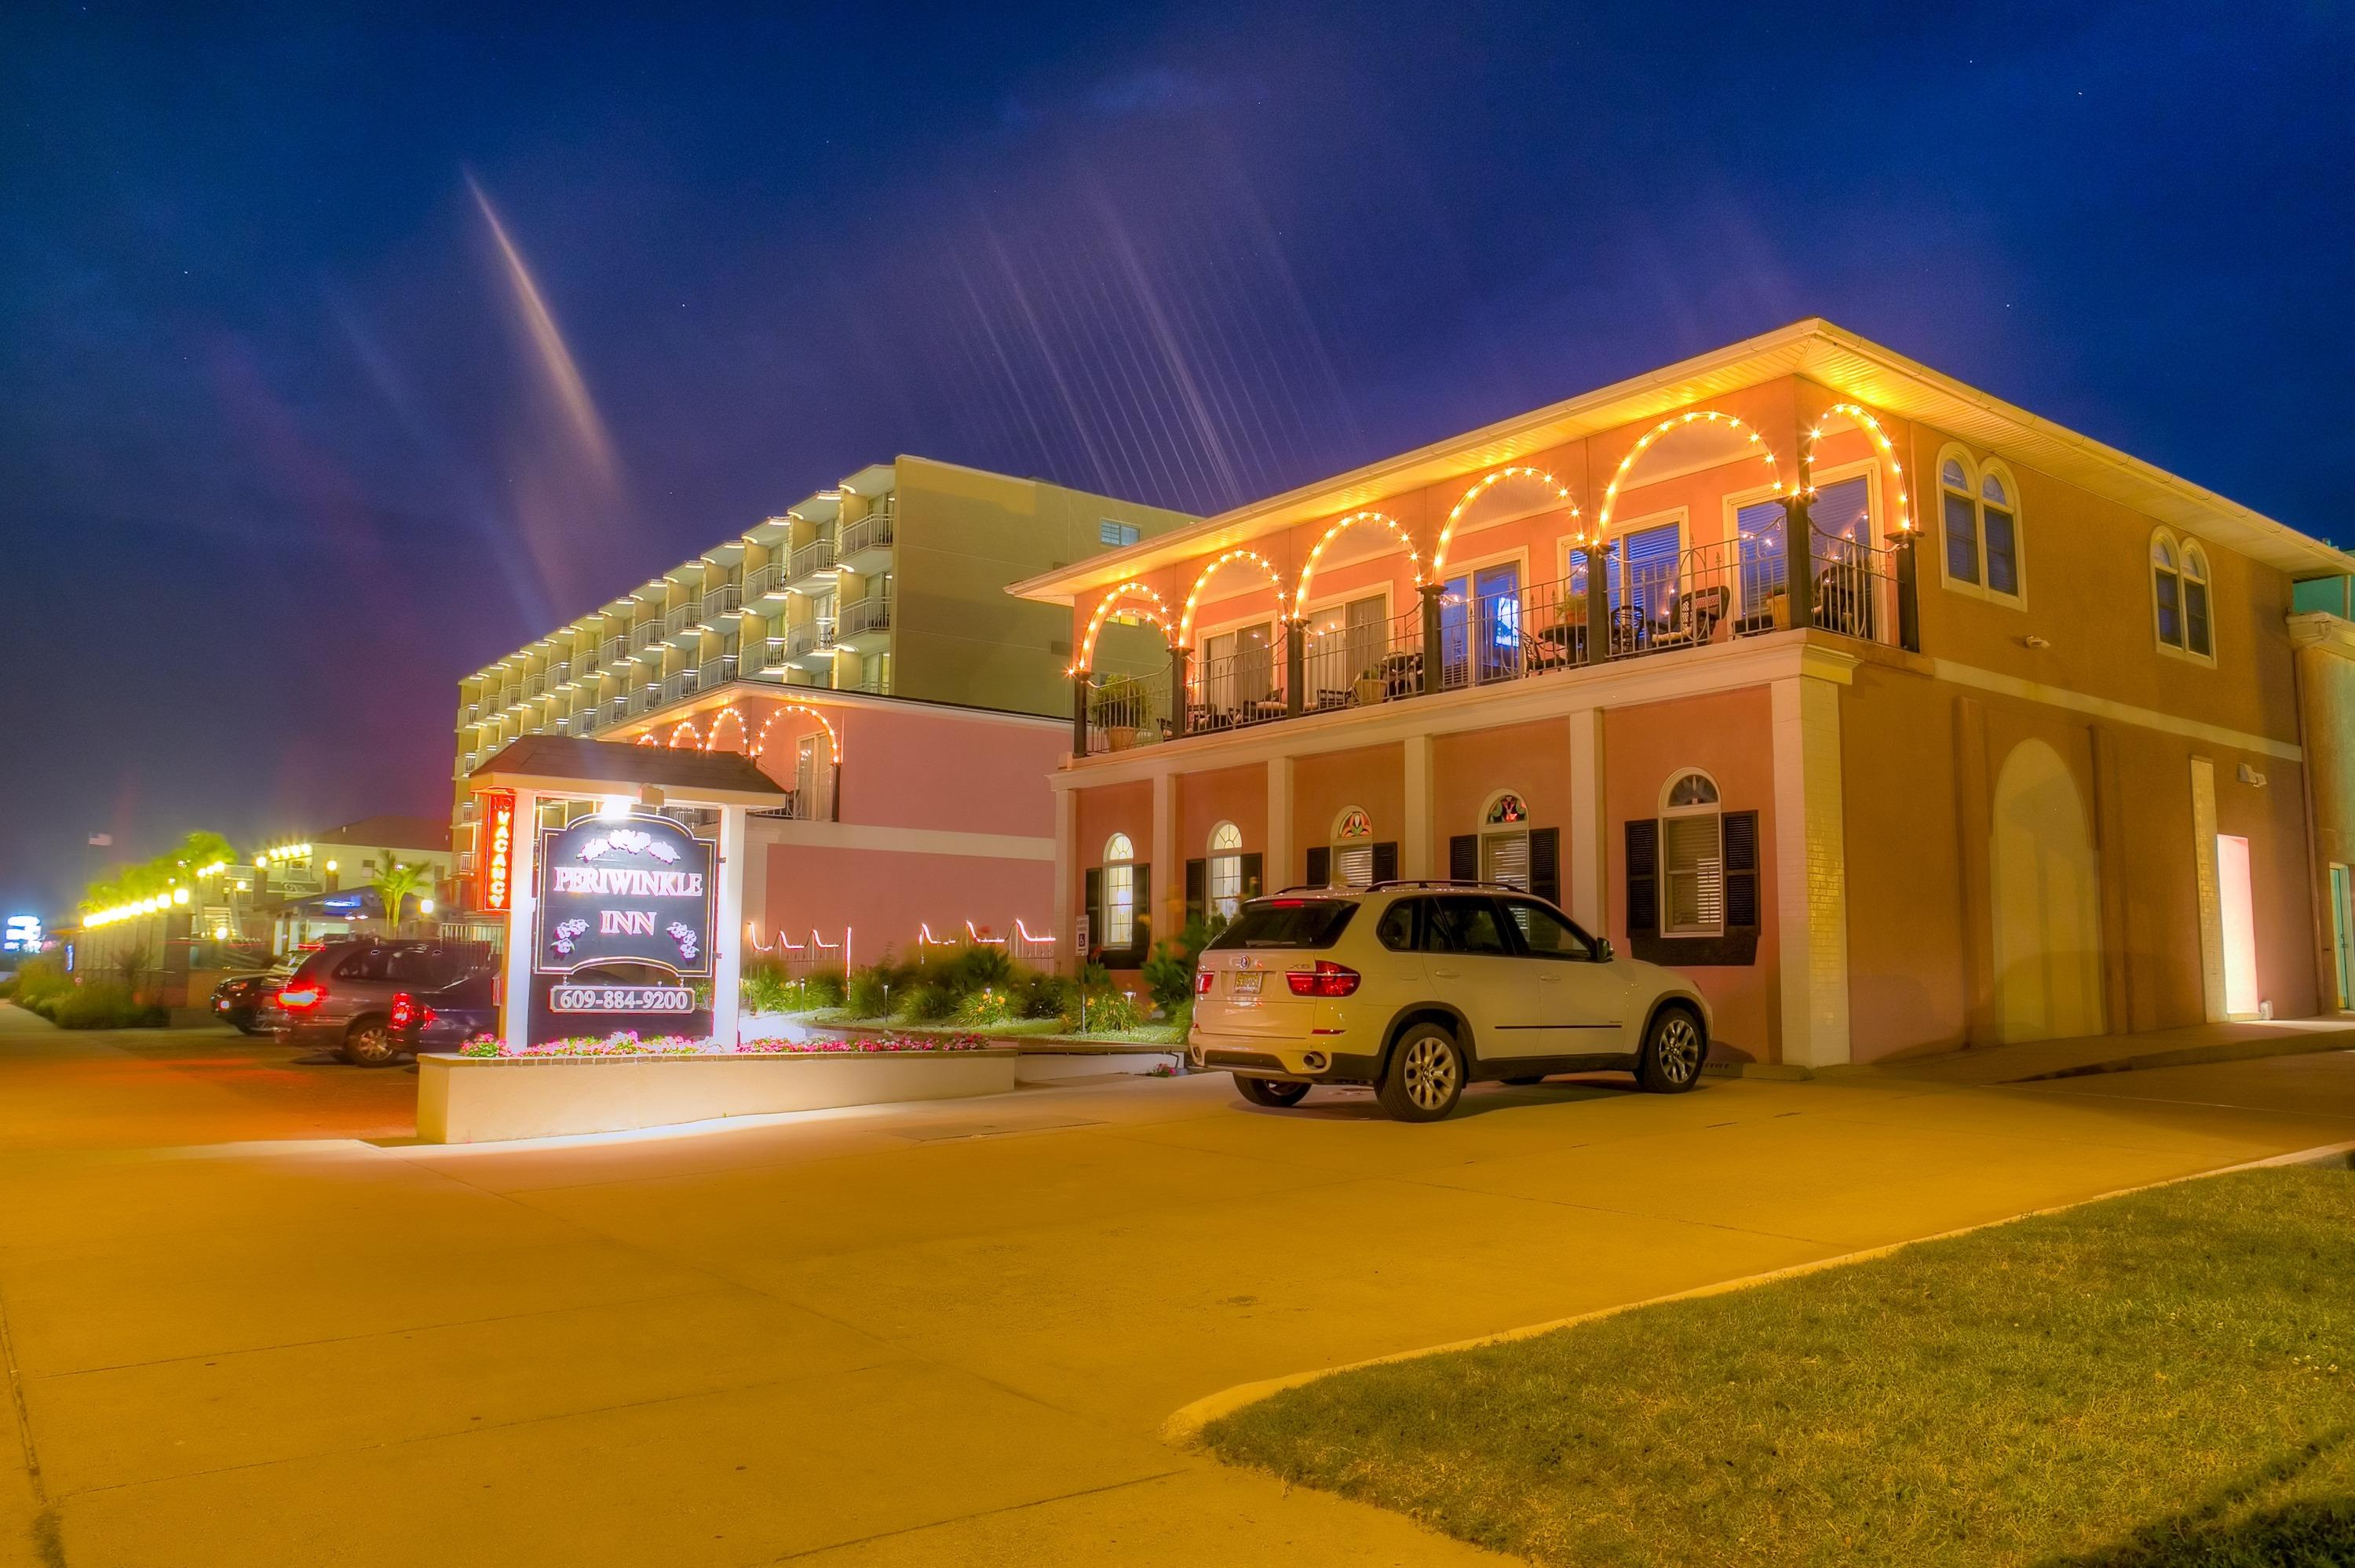 Hotels around cape may nj ibegin for Capri motor lodge cape may